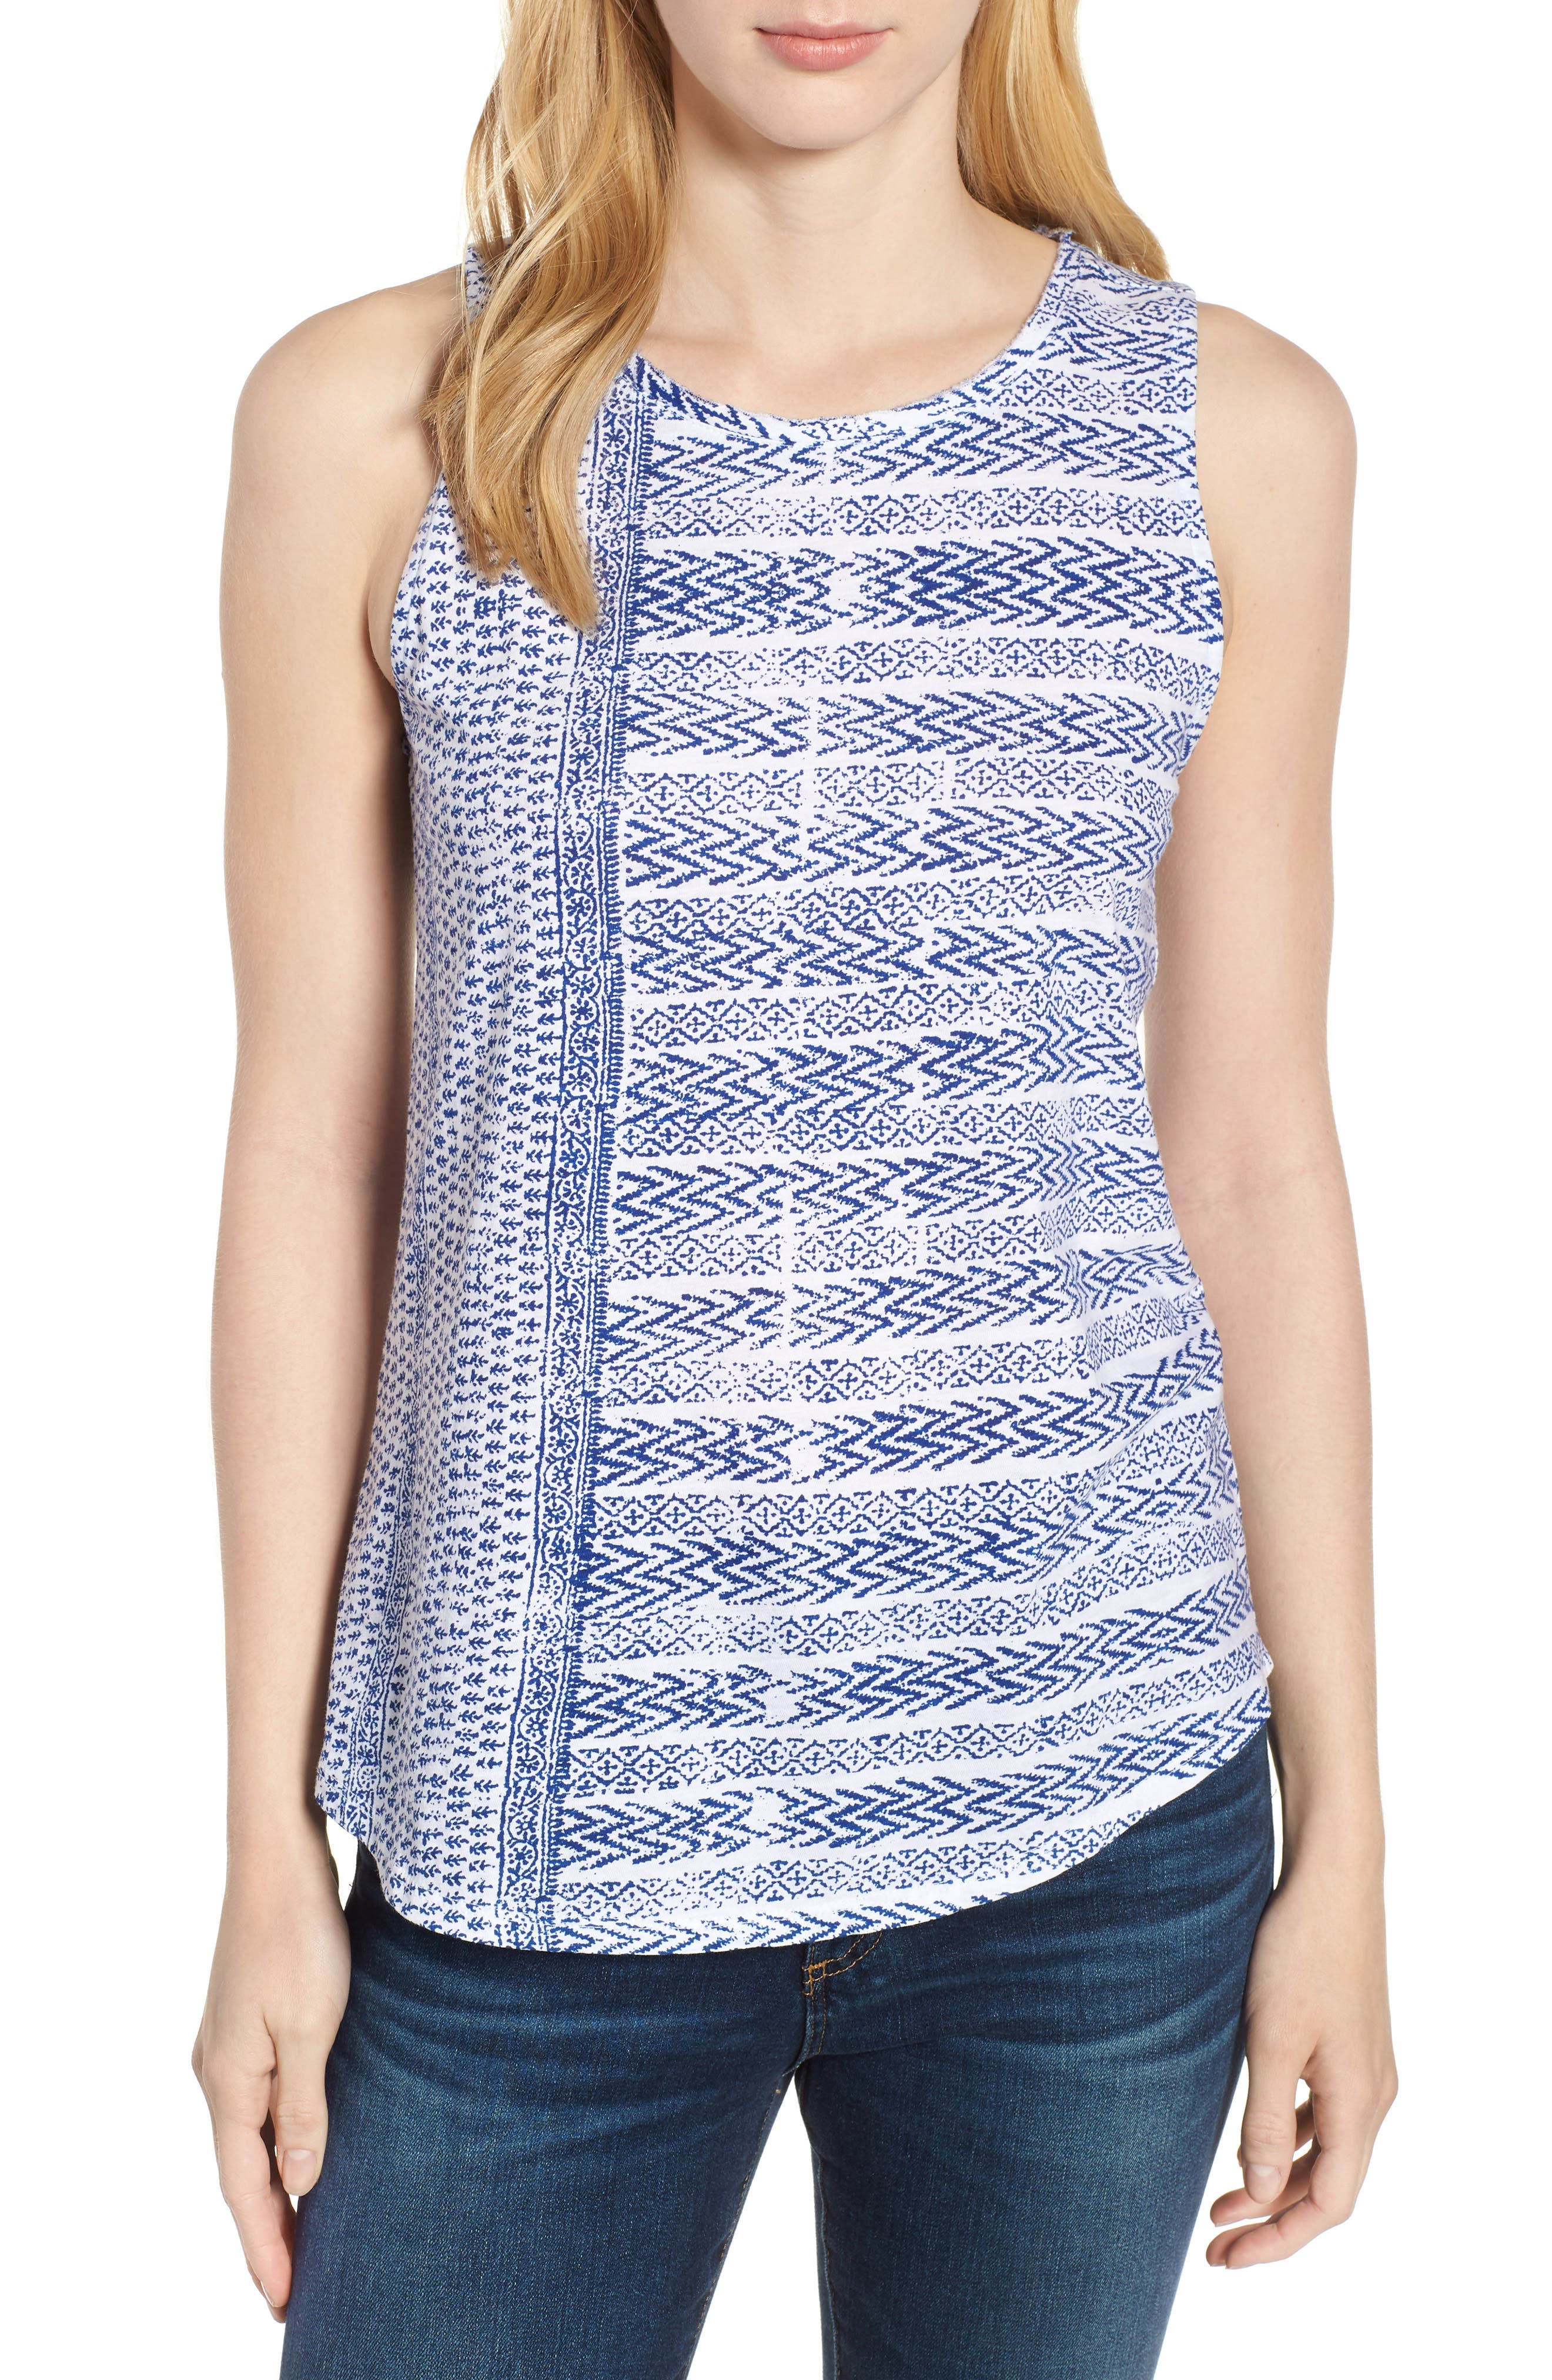 LUCKY BRAND,                             Print Tank,                             Main thumbnail 1, color,                             460